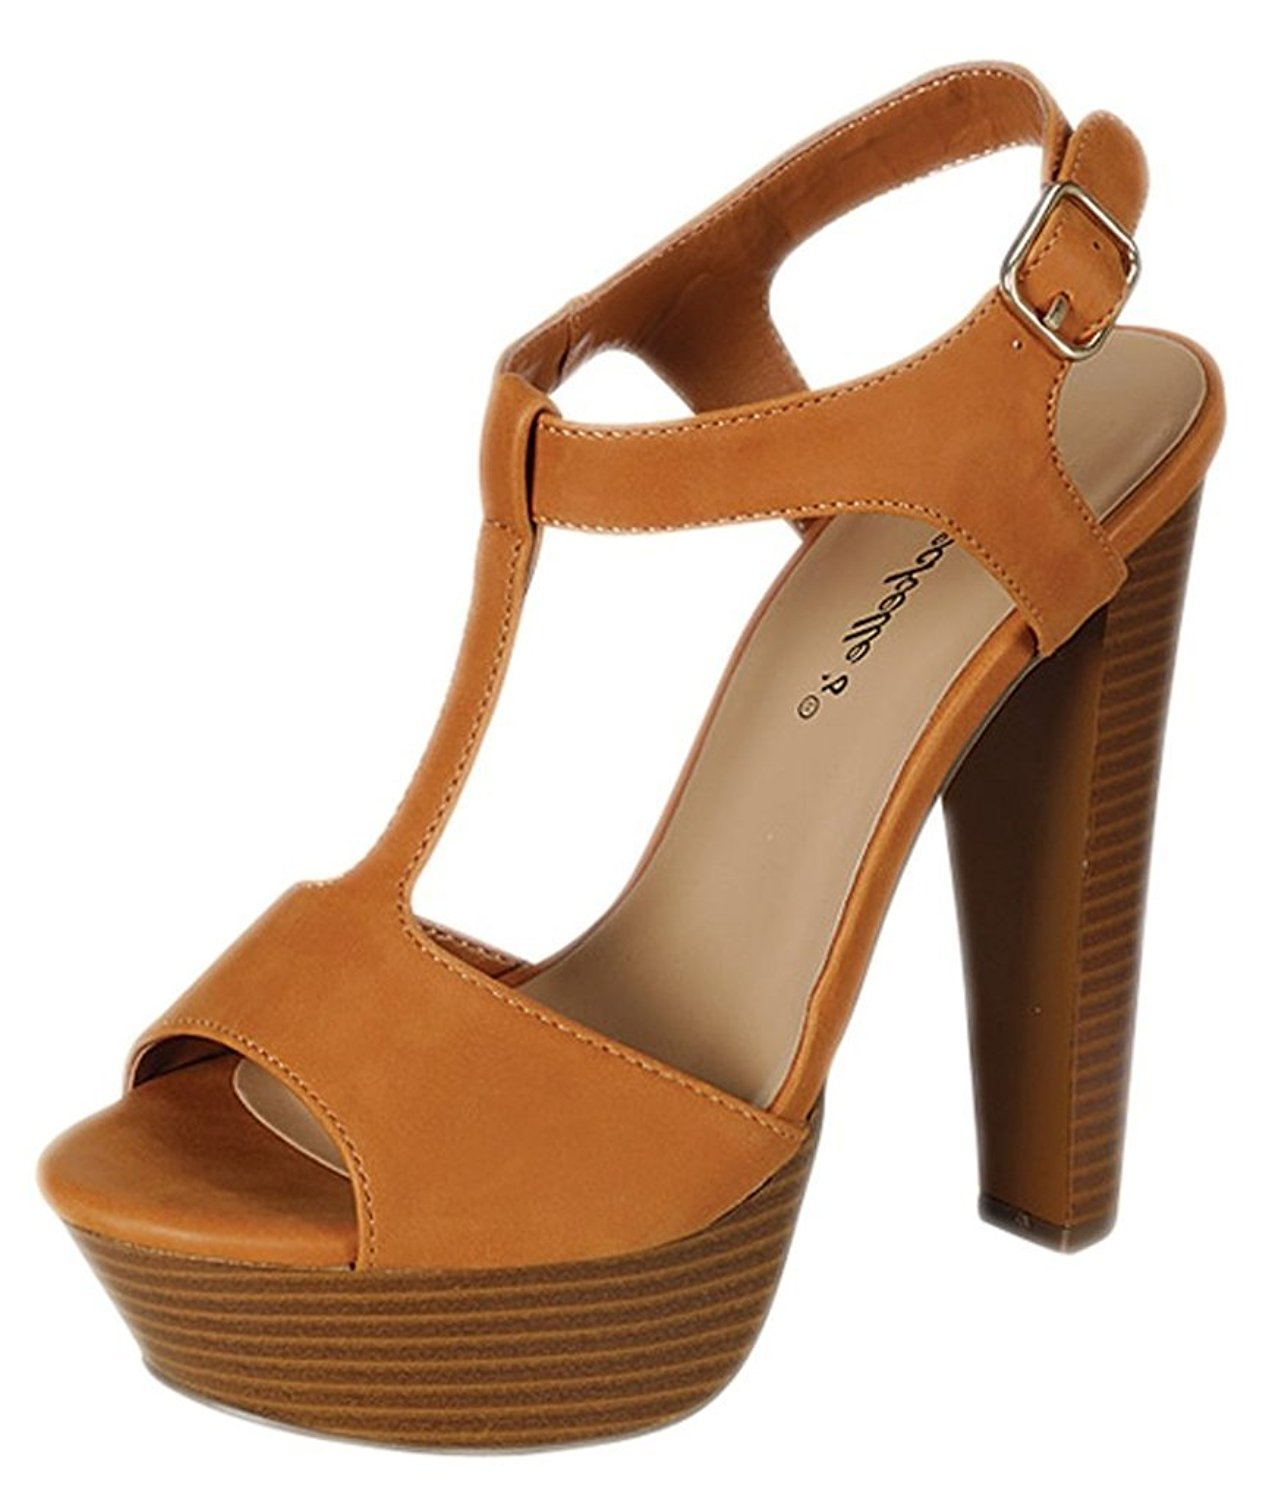 6afb9575adc Cheap T Strap Peep Toe, find T Strap Peep Toe deals on line at ...